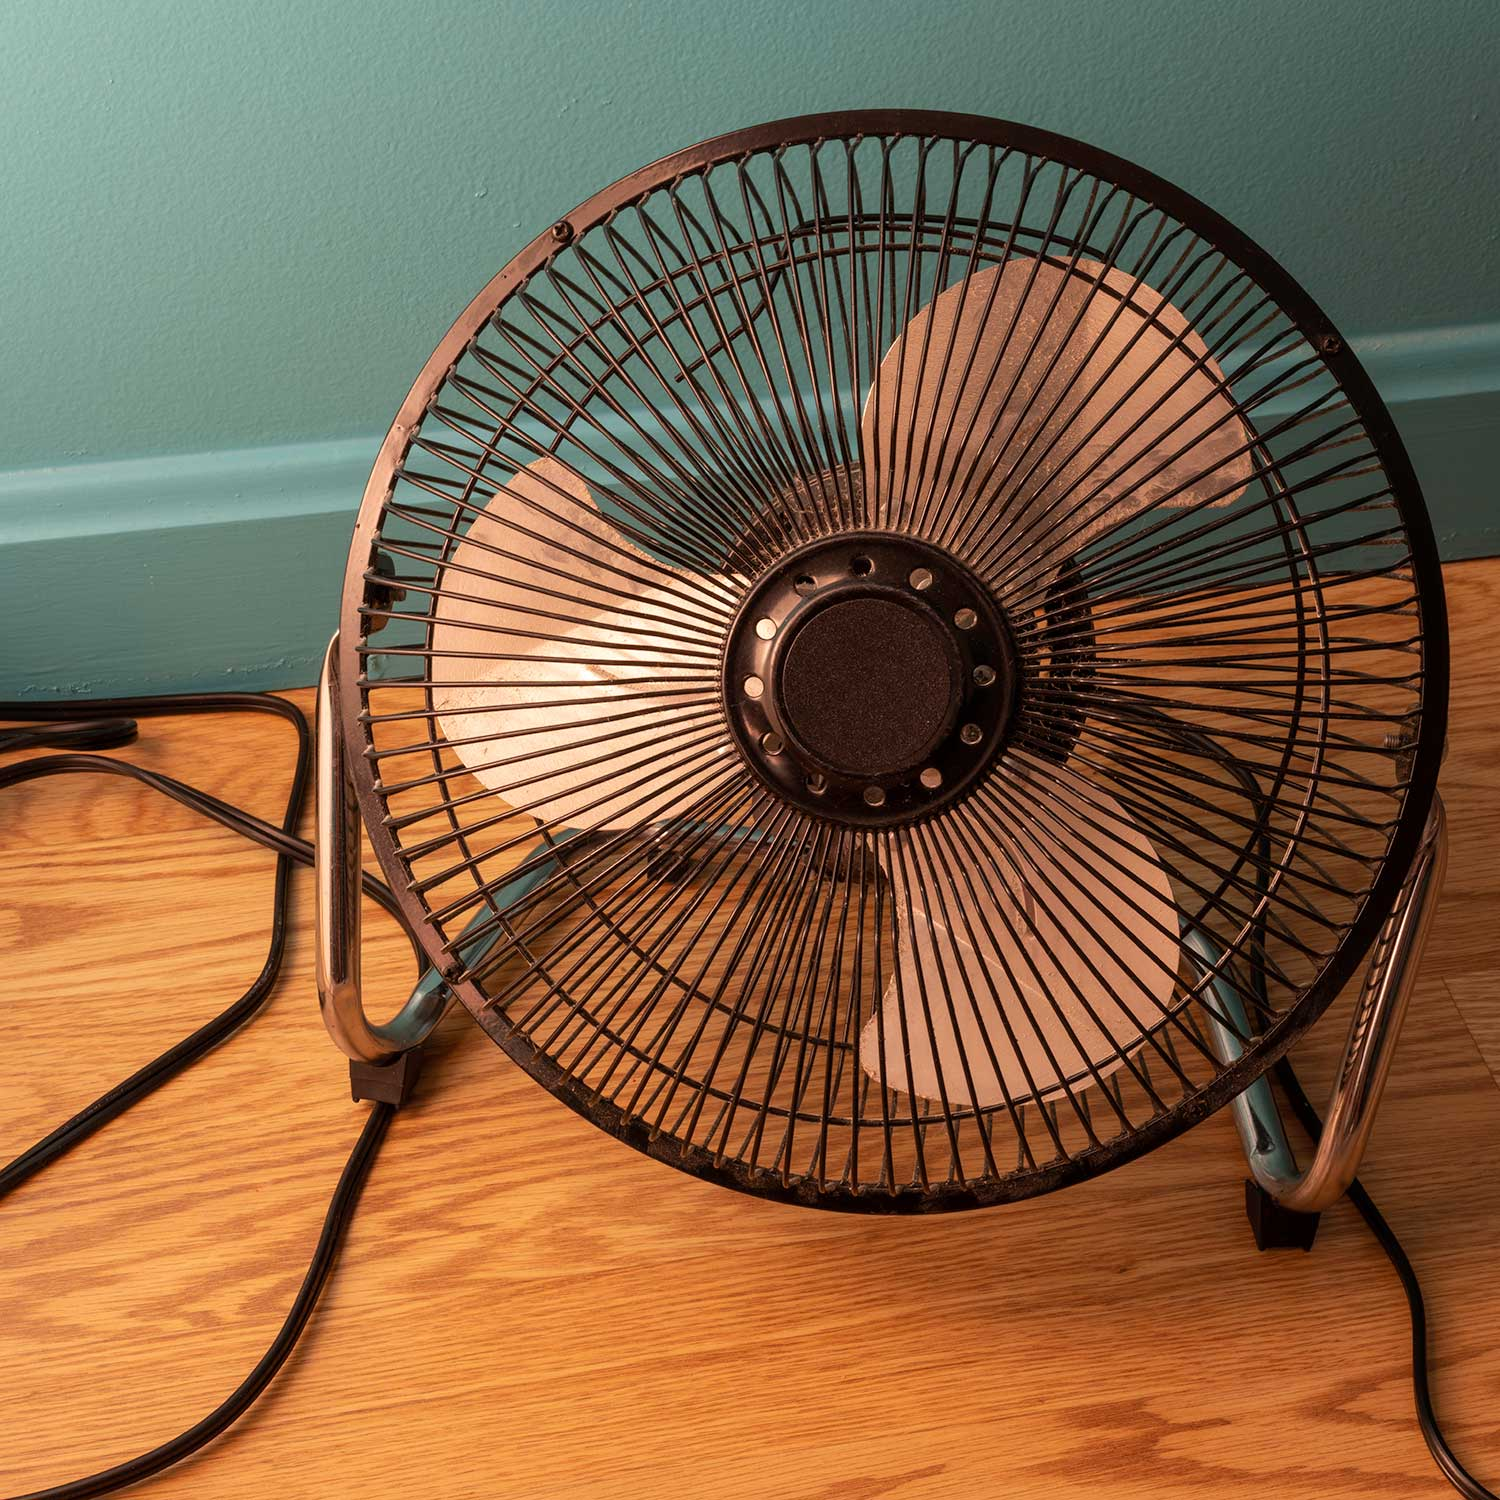 Small round black electric fan on wood floor